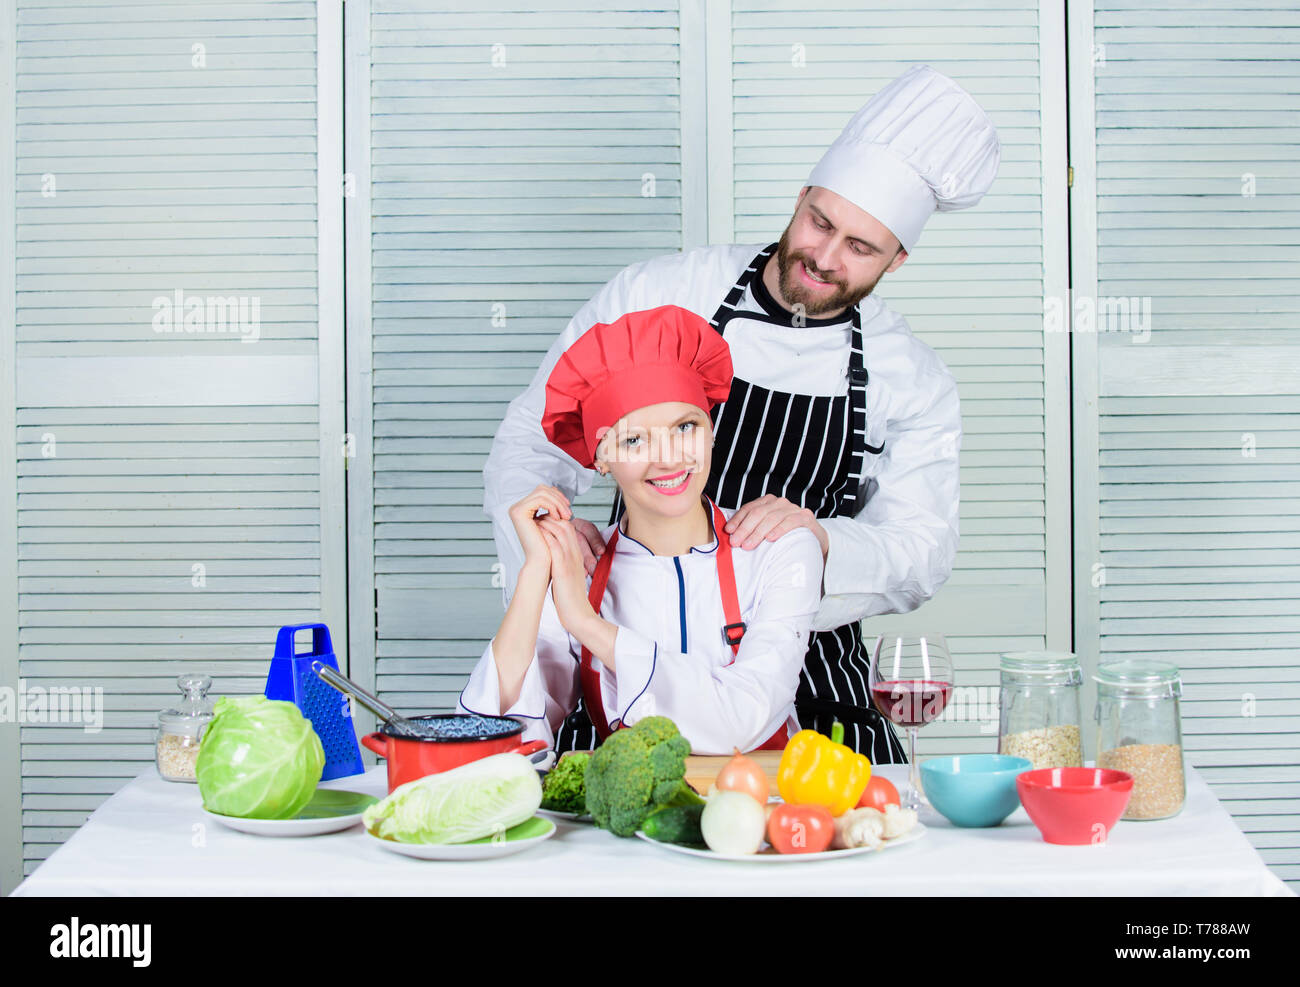 Woman and bearded man culinary partners. Ultimate cooking challenge. Couple compete in culinary arts. Reasons why couples cooking together. Cooking with your spouse can strengthen relationships. - Stock Image